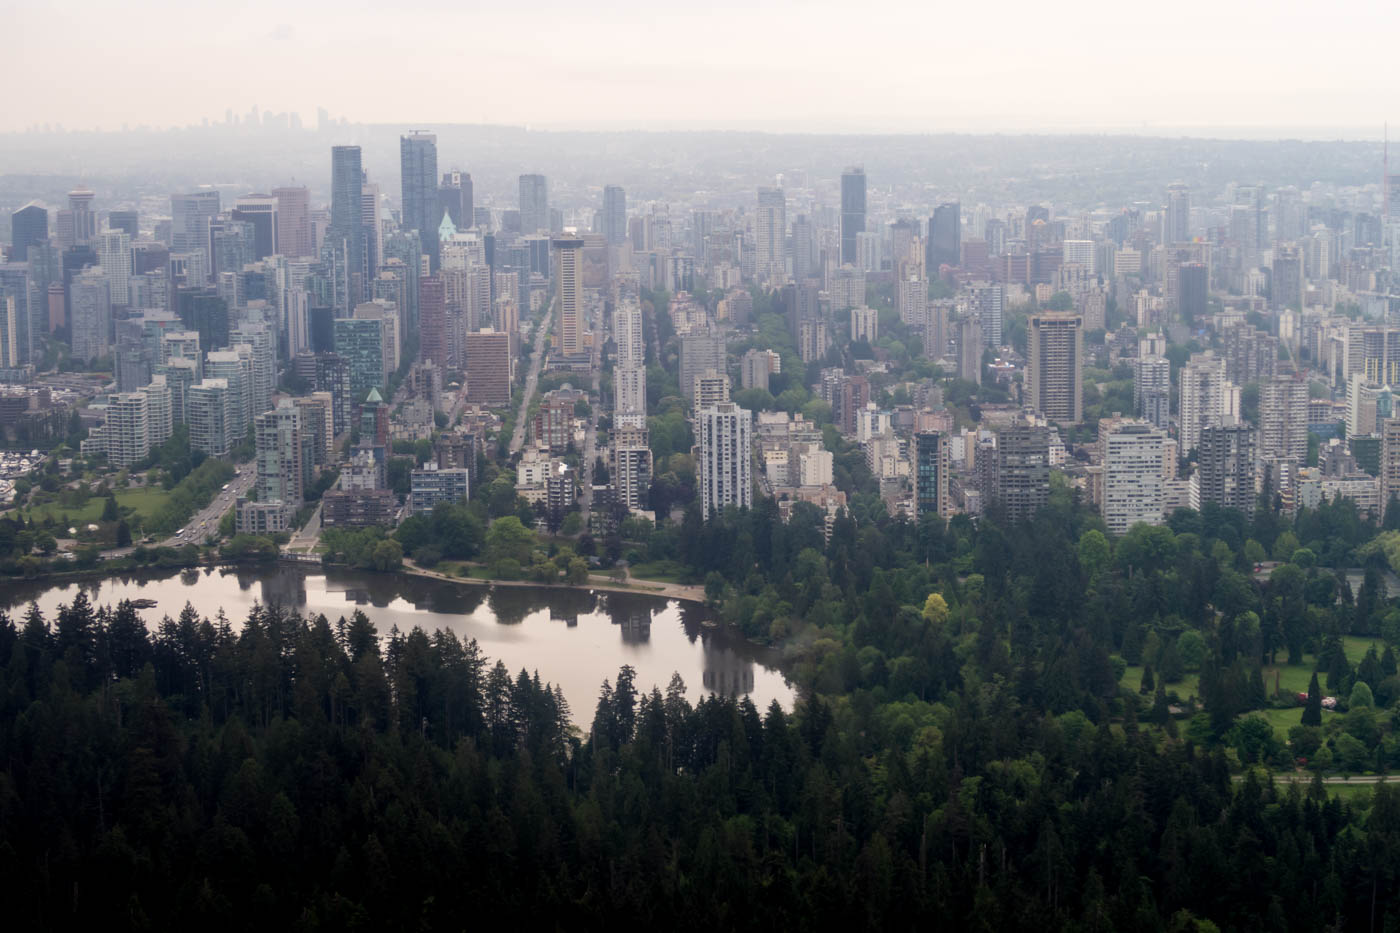 Stanley Park and Vancouver